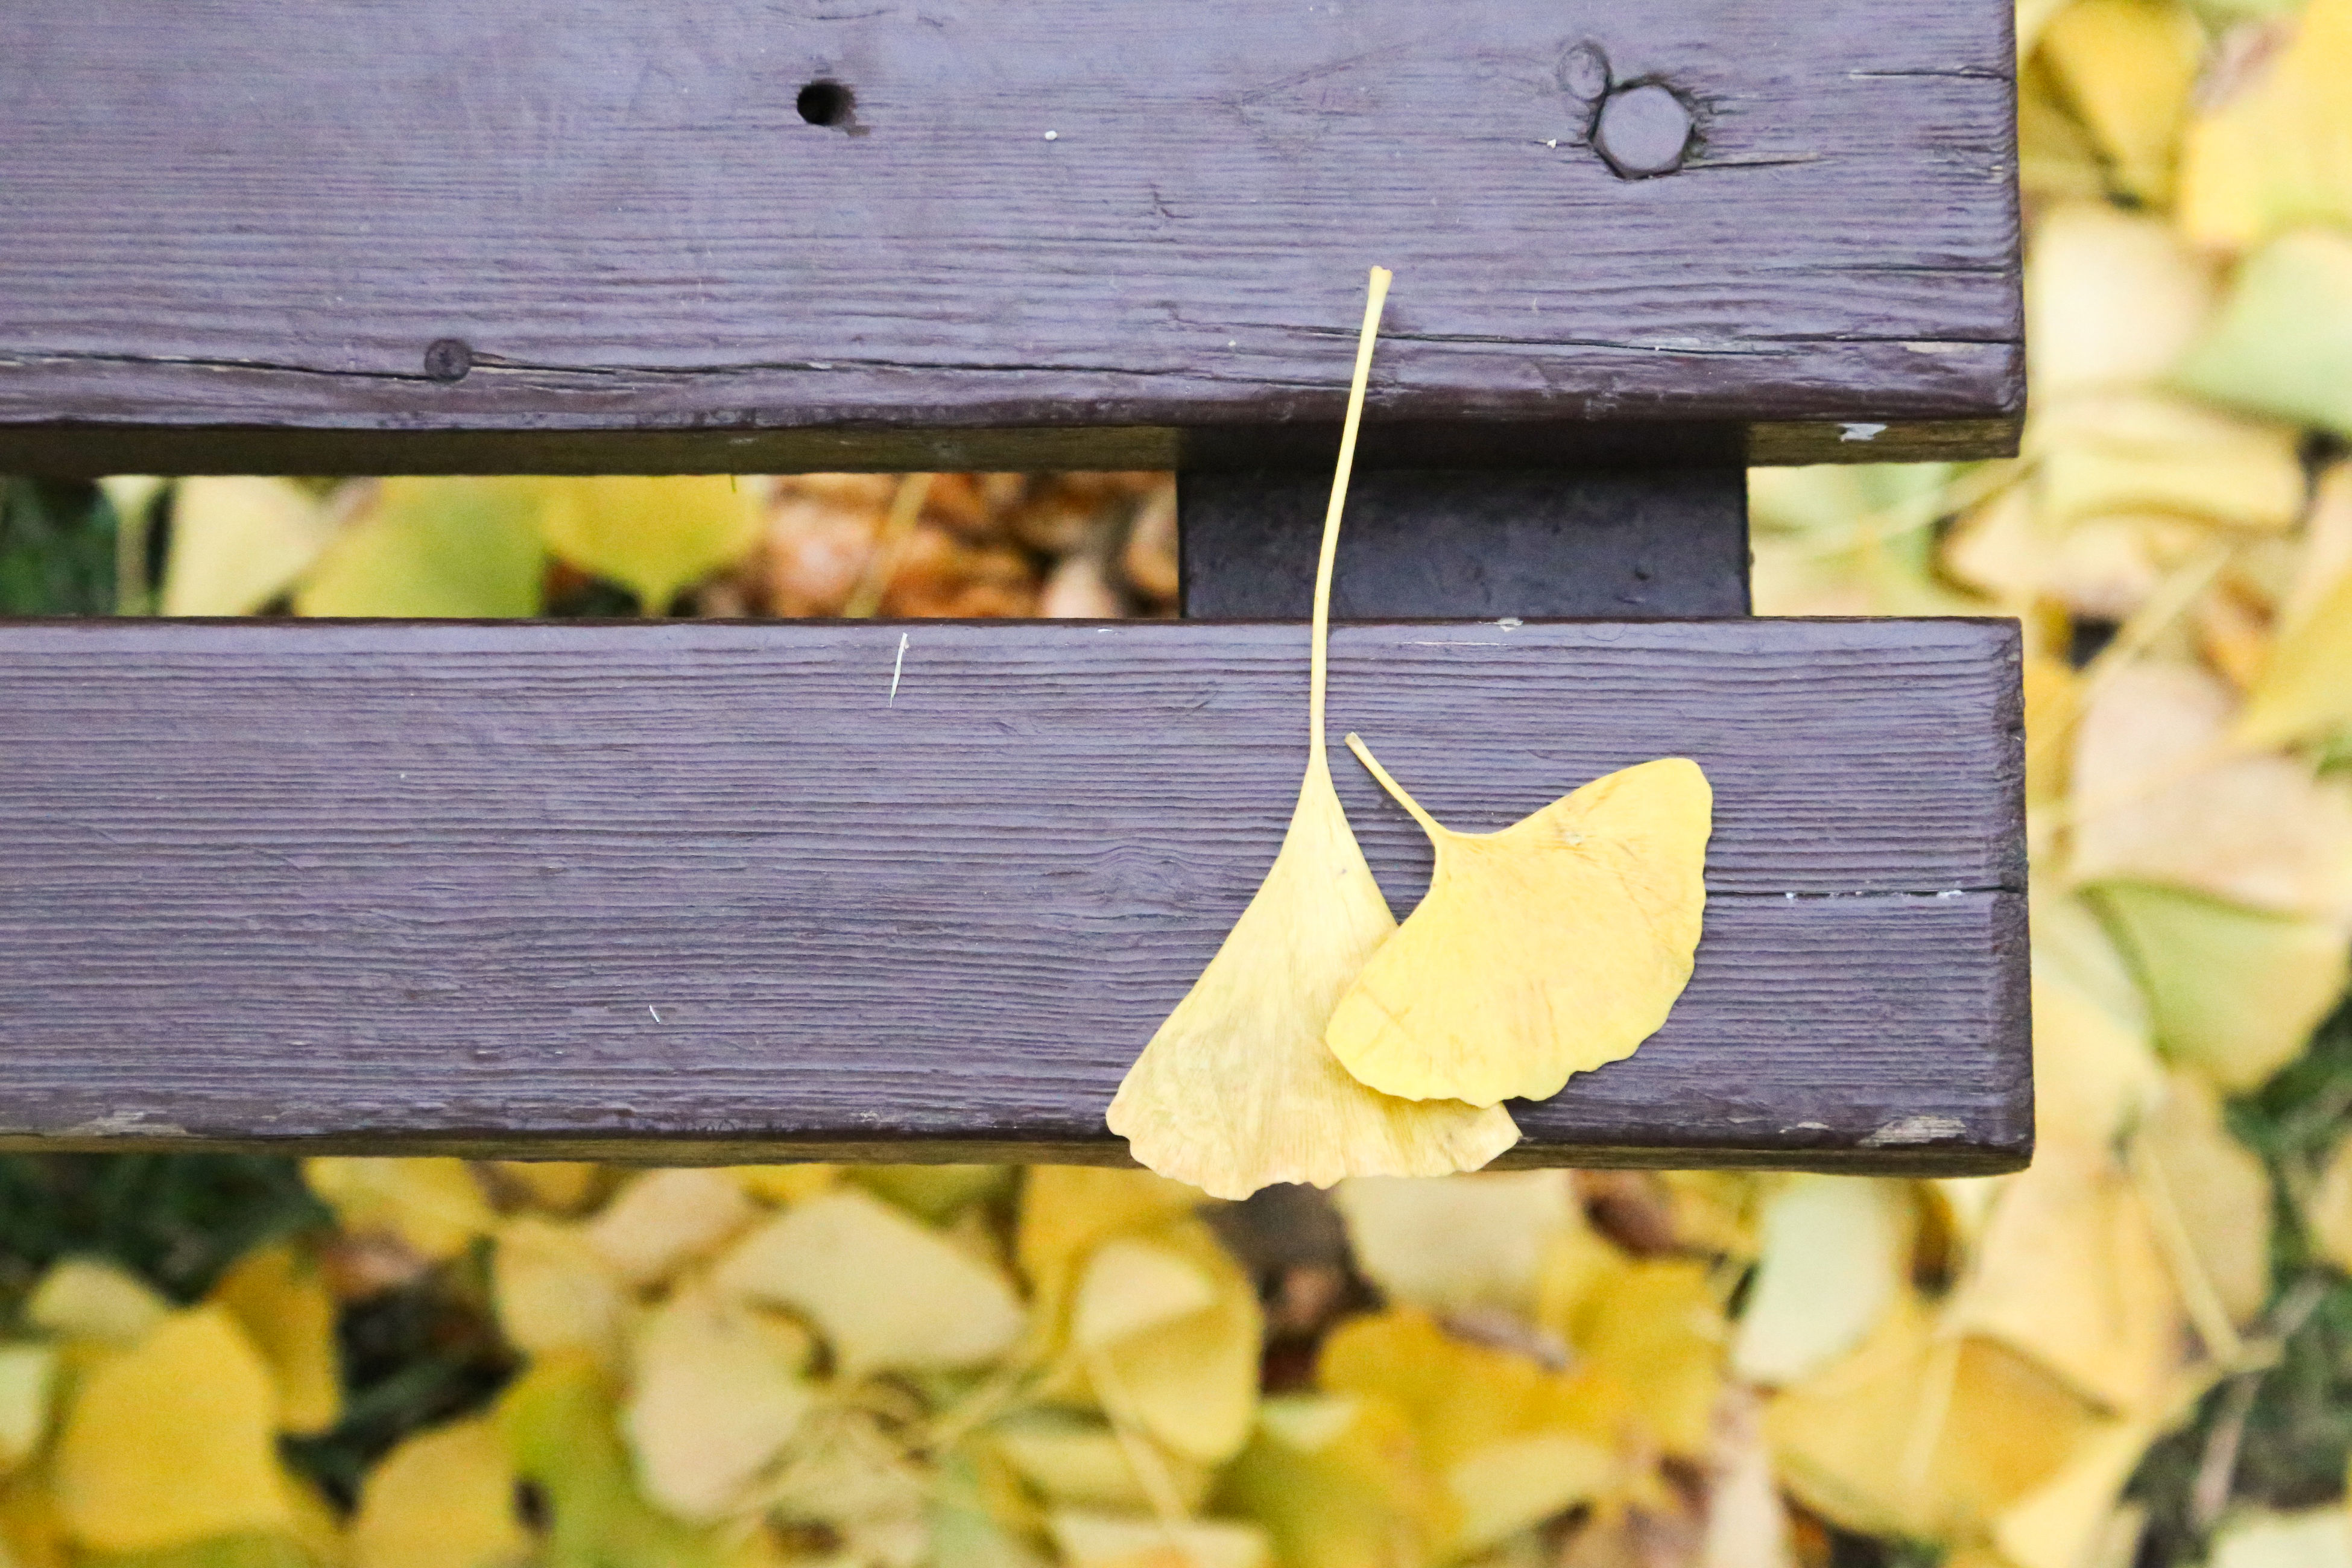 wood - material, wooden, wood, plank, bench, close-up, yellow, leaf, focus on foreground, day, selective focus, outdoors, no people, autumn, nature, table, high angle view, dry, old, sunlight